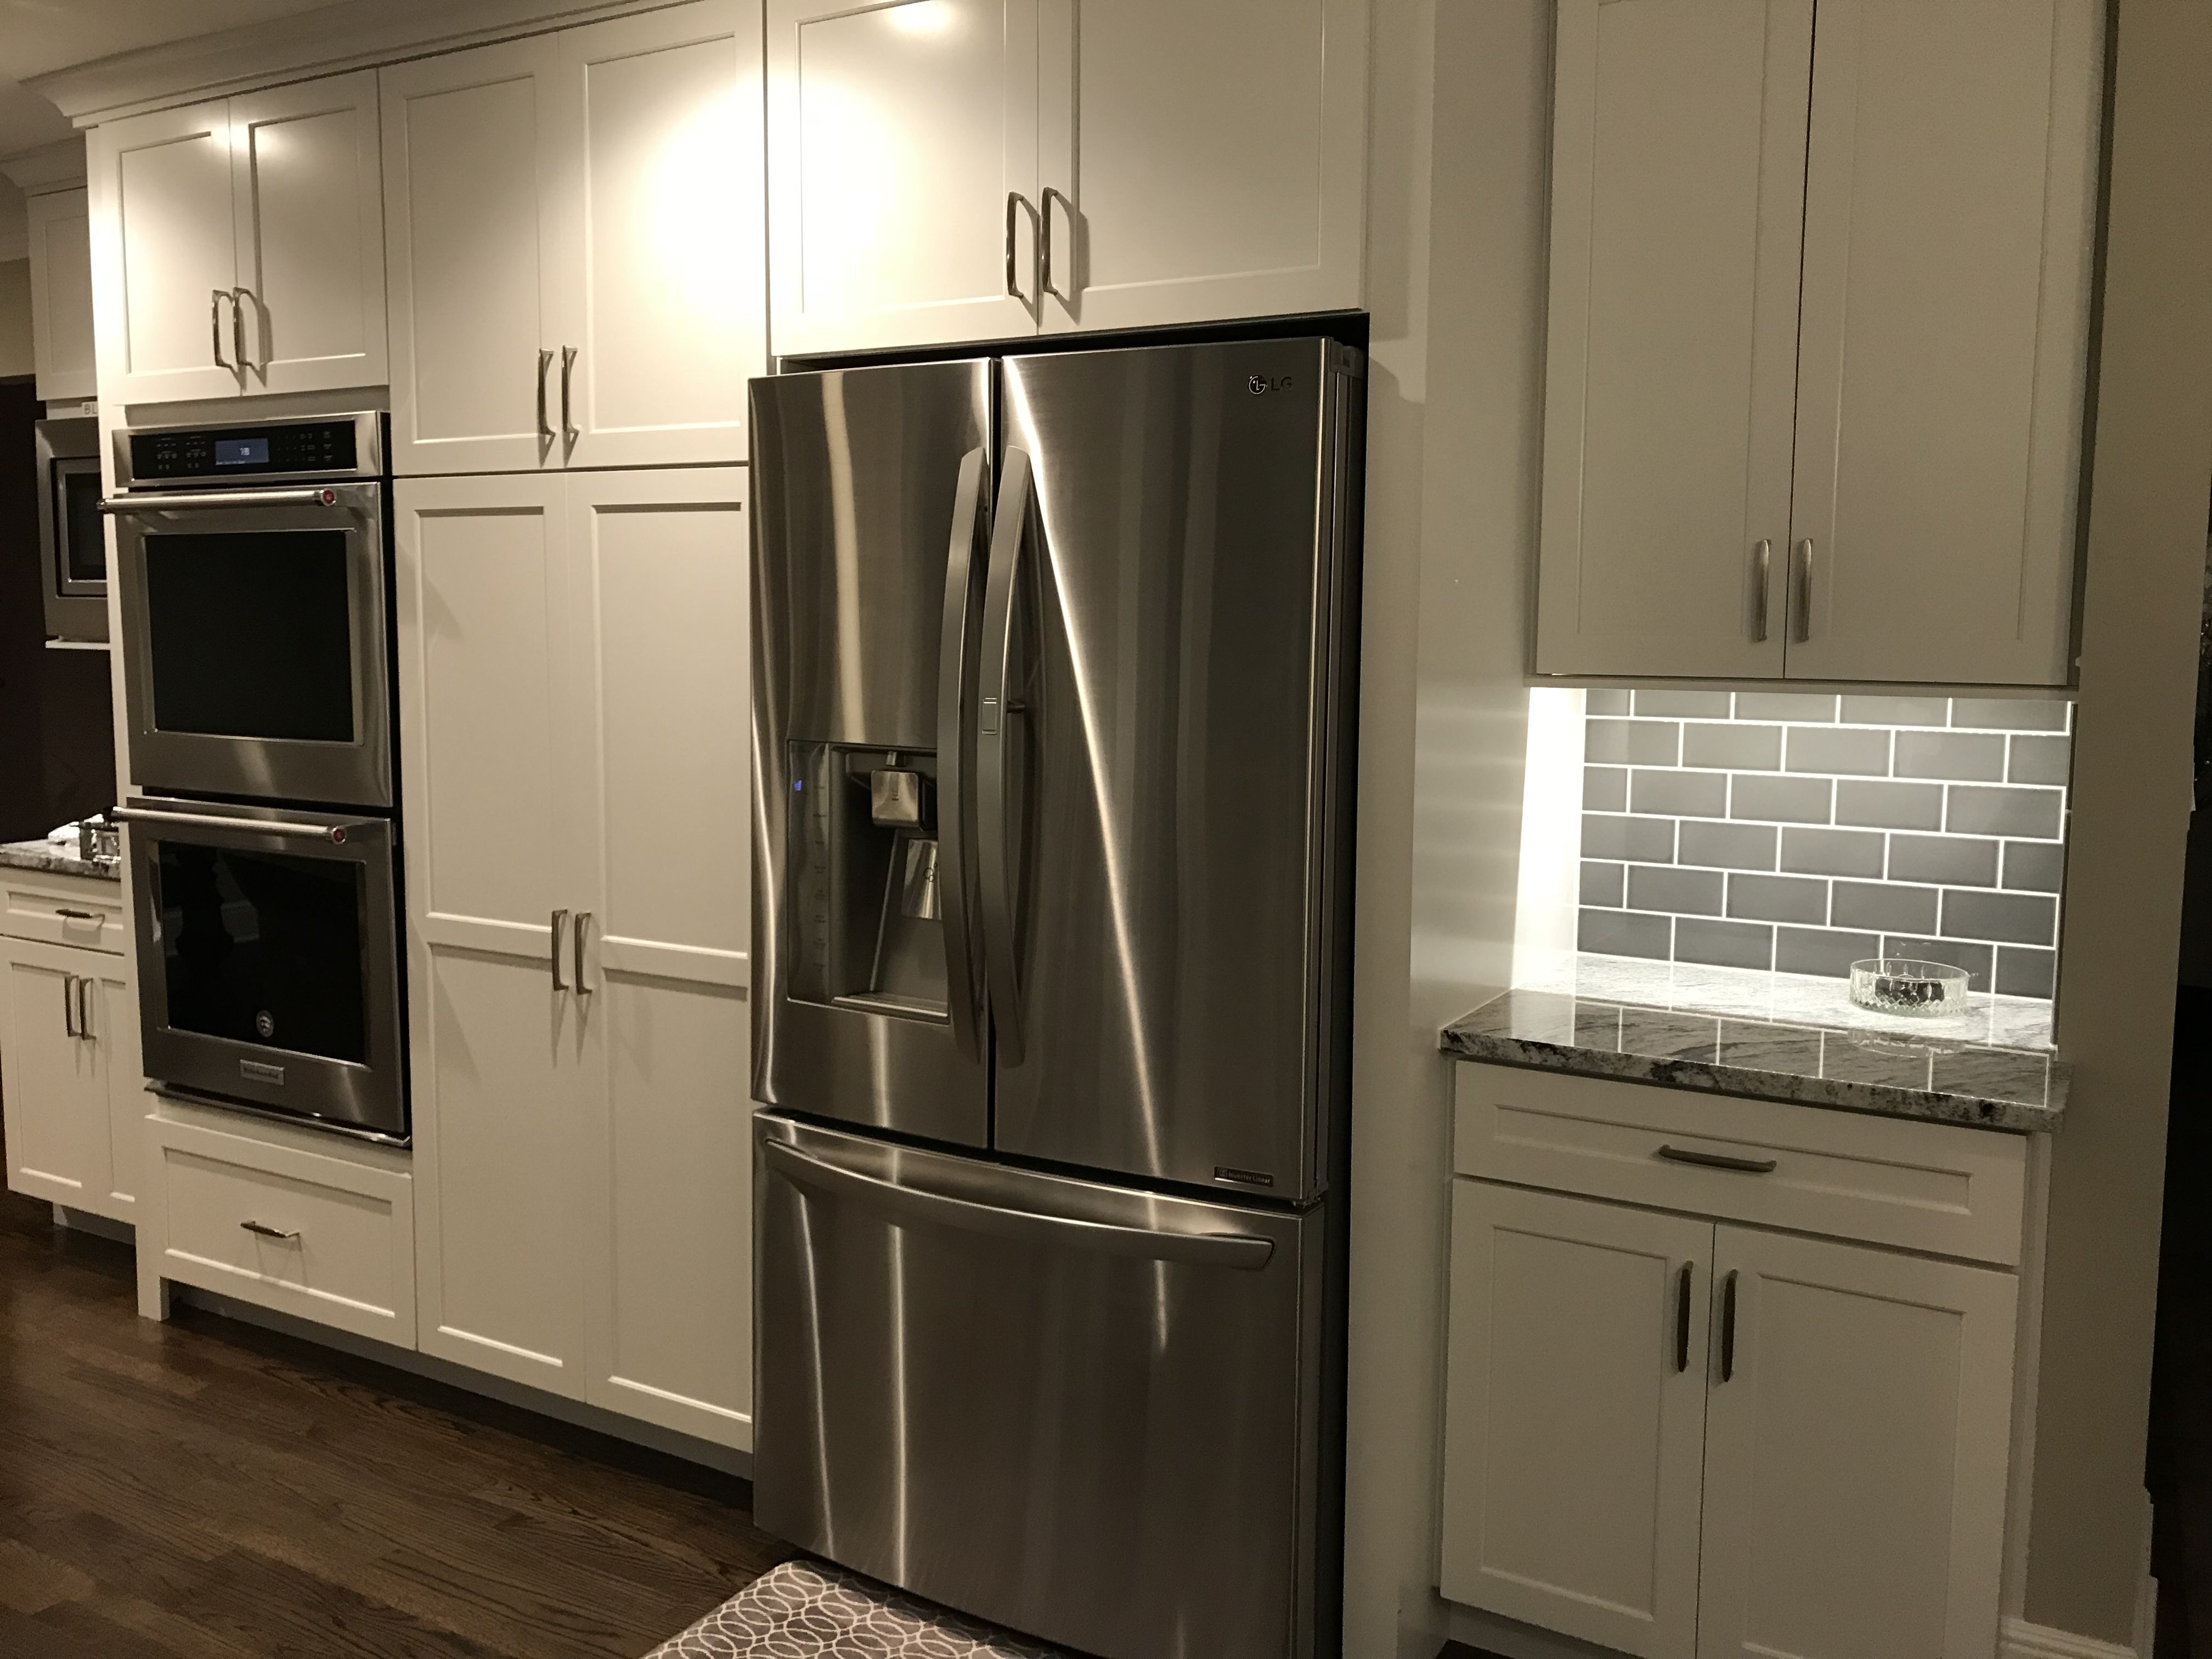 Decora Prescott White Cabinets New Kitchenaid Double Oven Pantry With Sliding Shelves New Lg Refrigerator Sil Home Kitchens Kitchen Remodel Refrigerator Lg